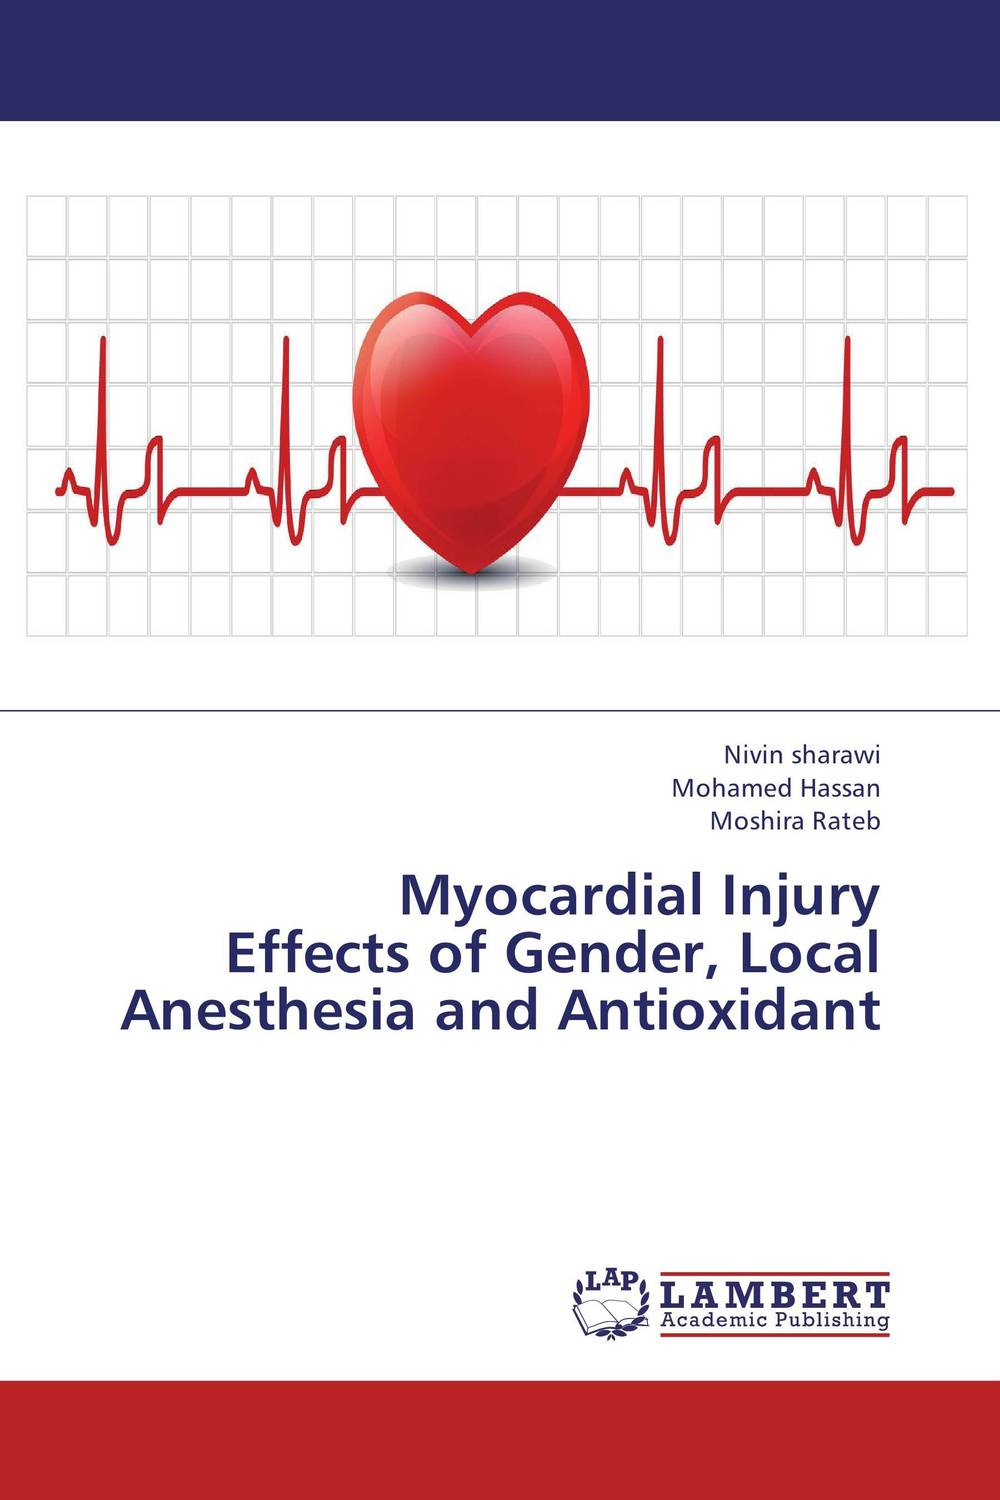 цены Myocardial Injury  Effects of Gender, Local Anesthesia and Antioxidant